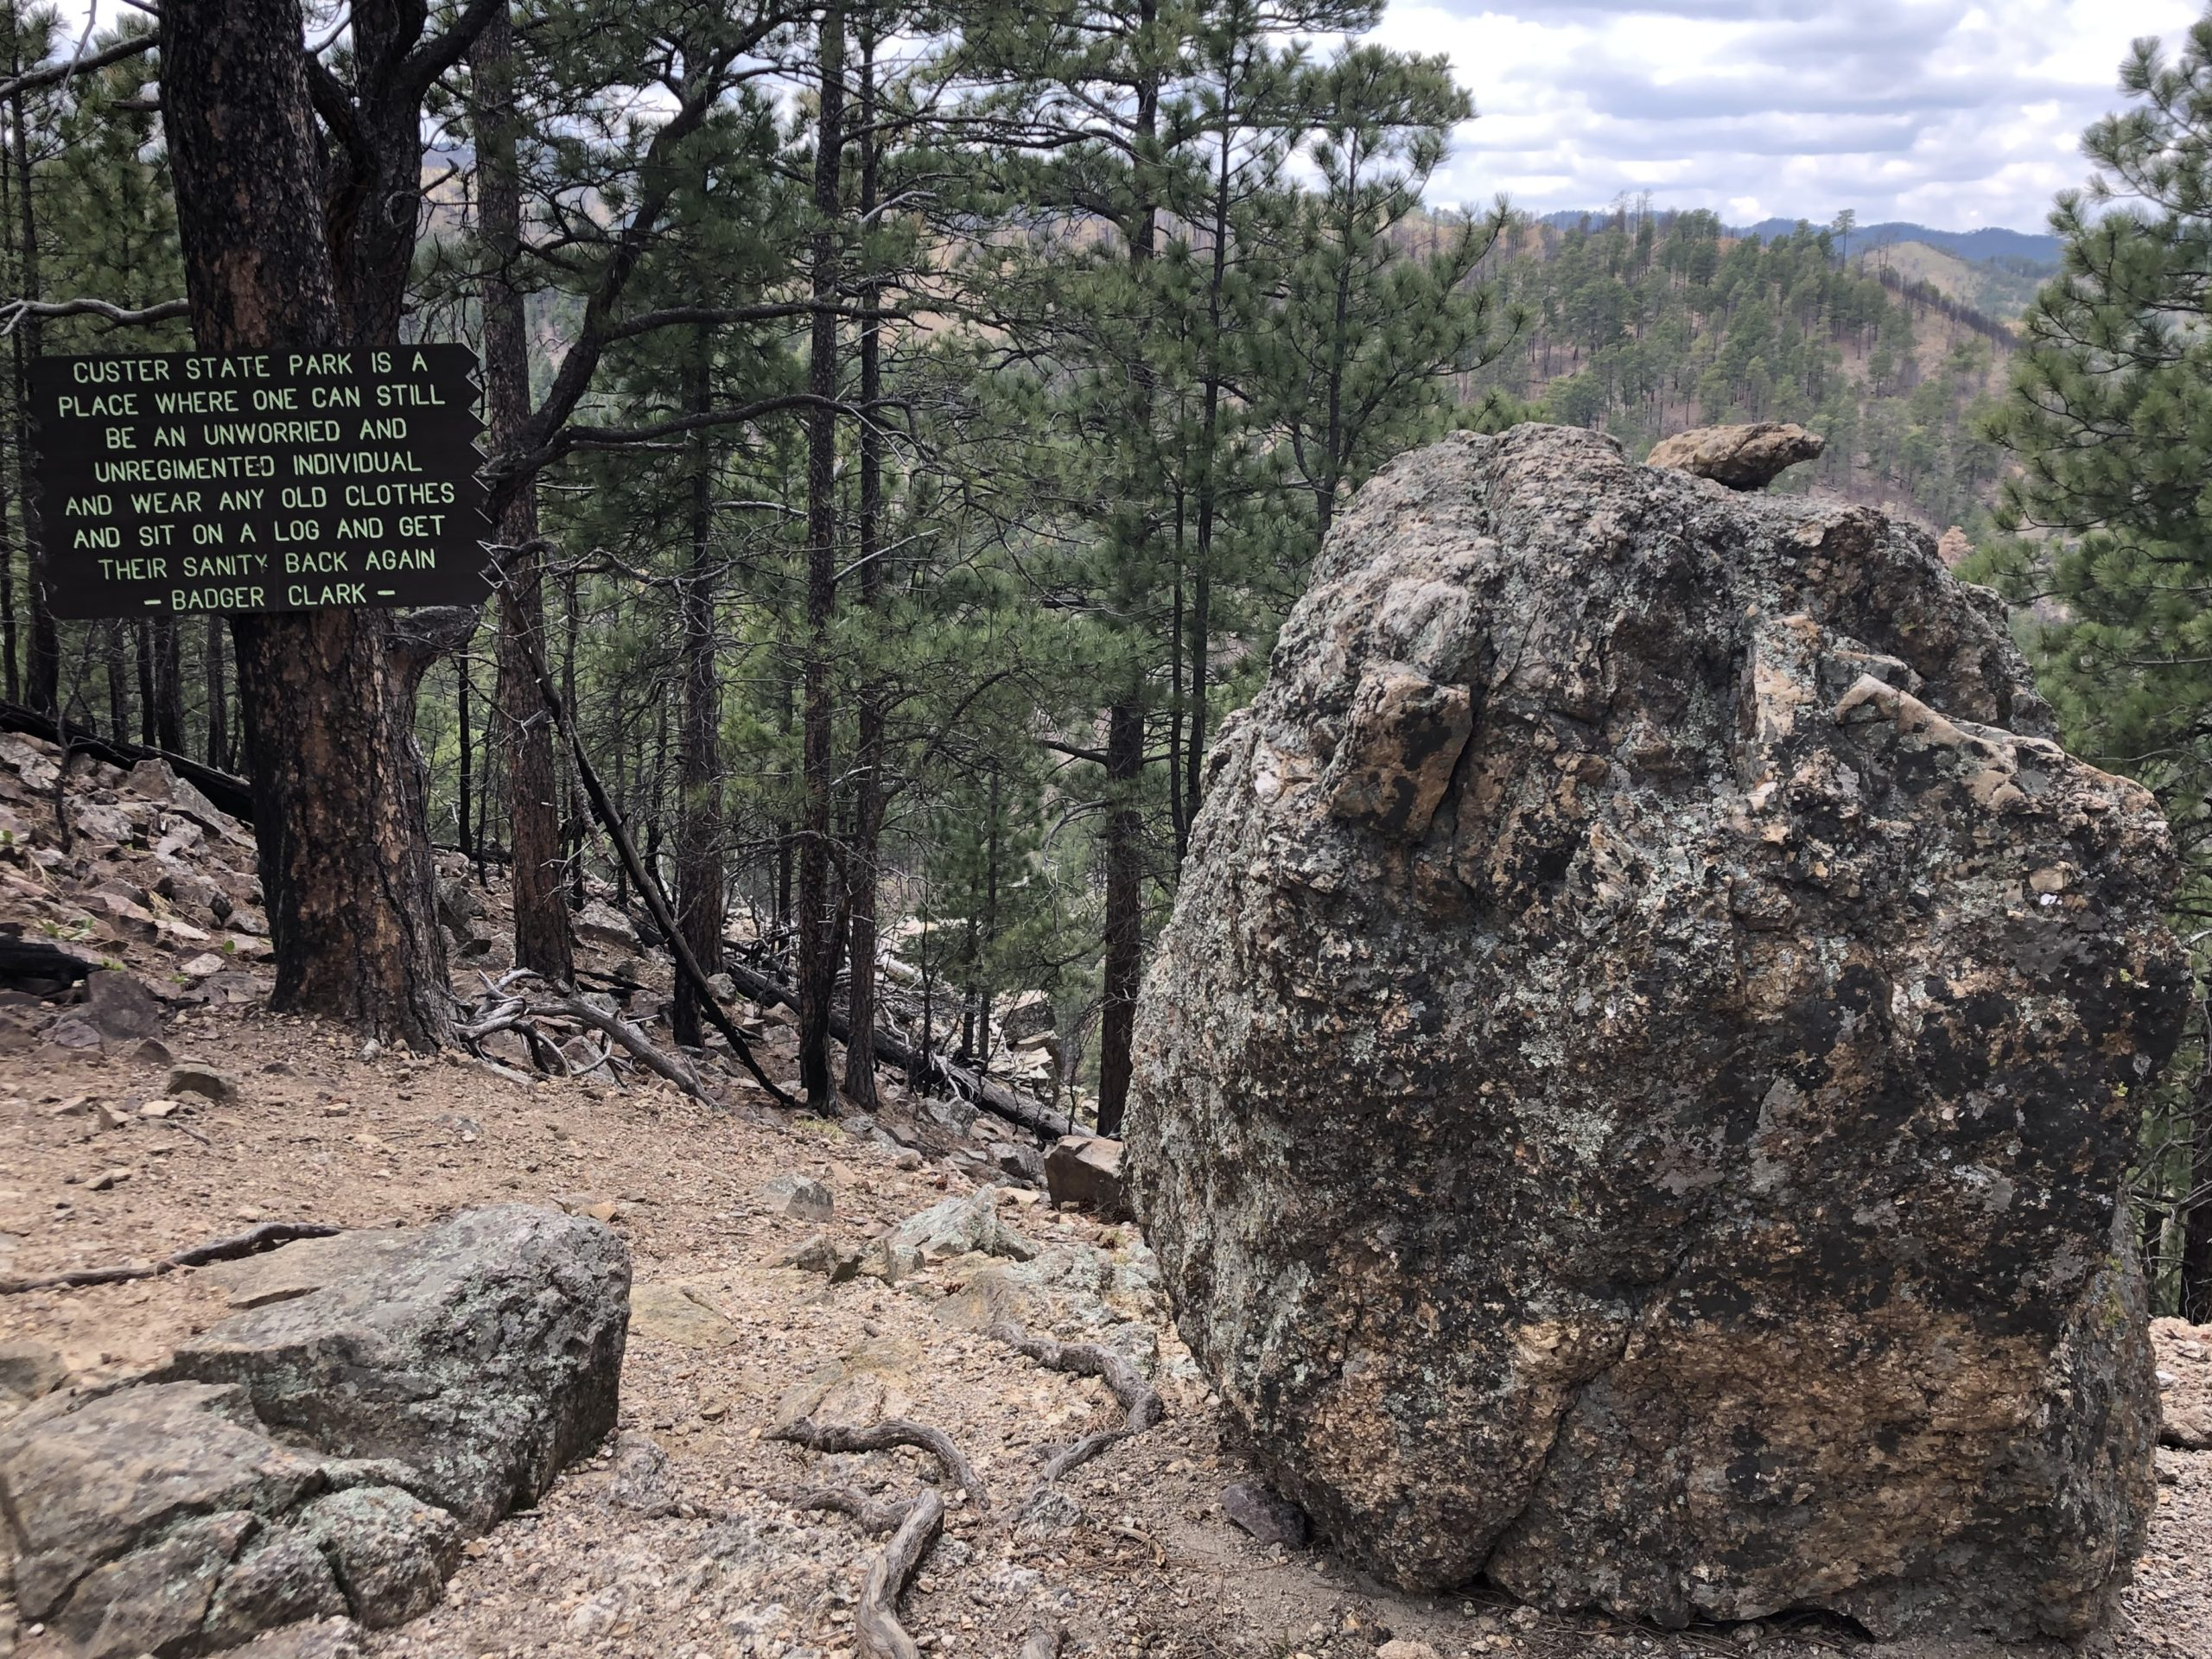 A sign inviting hikers to sit and rest near a giant boulder